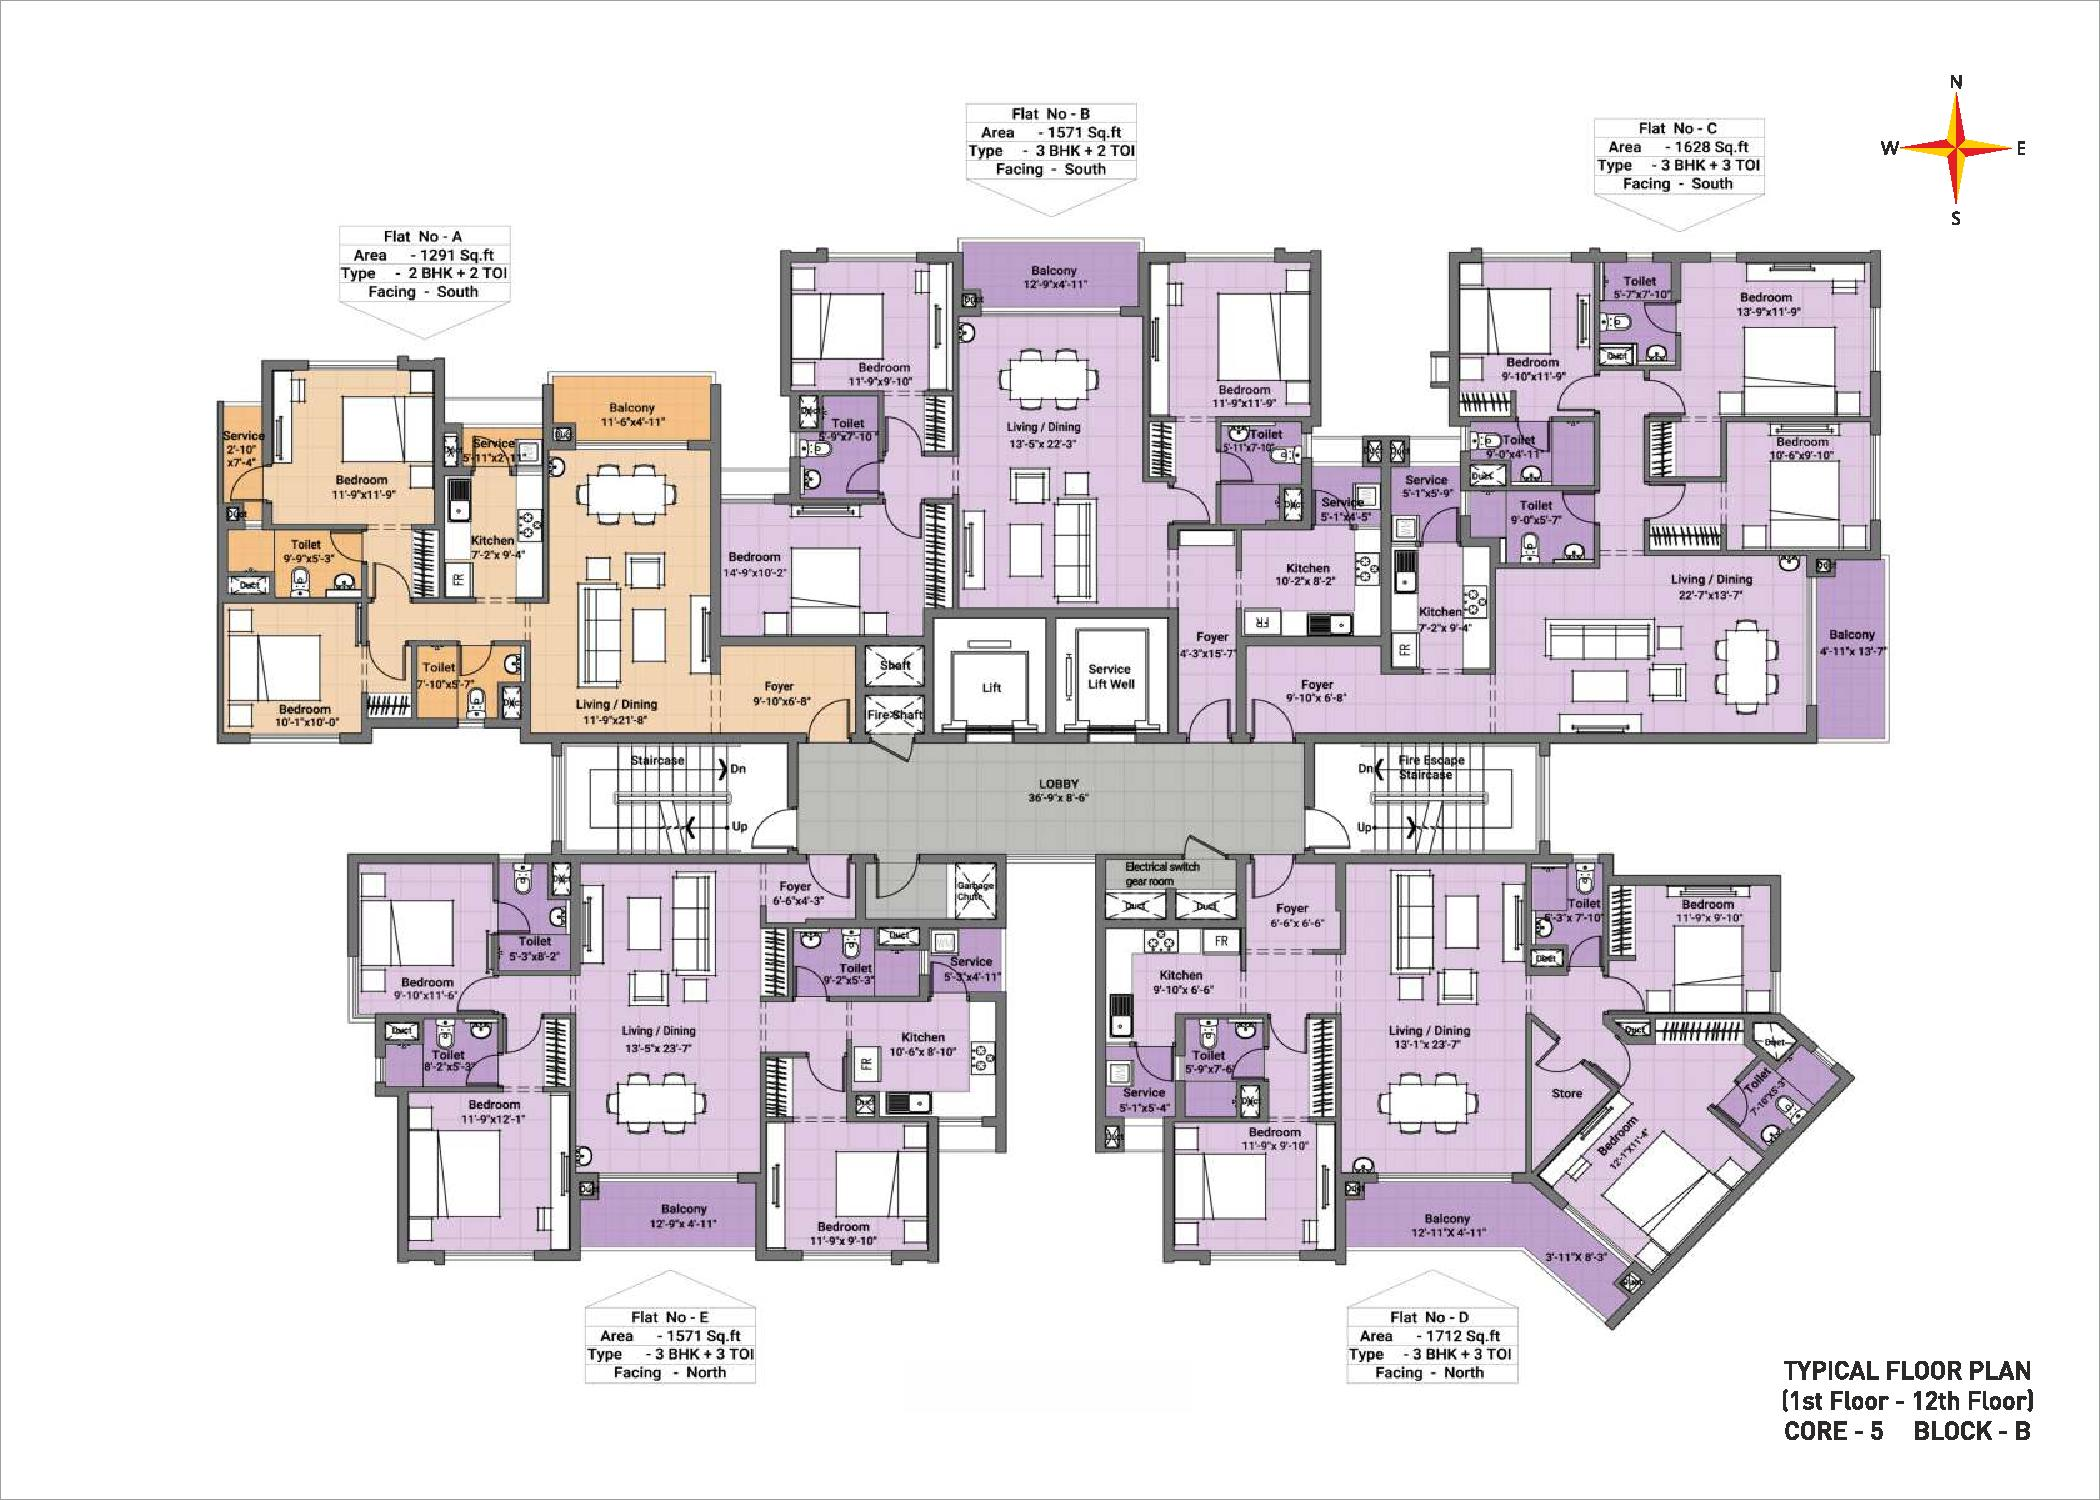 Typical floor plan - Block B Core 5(1-12th floor)